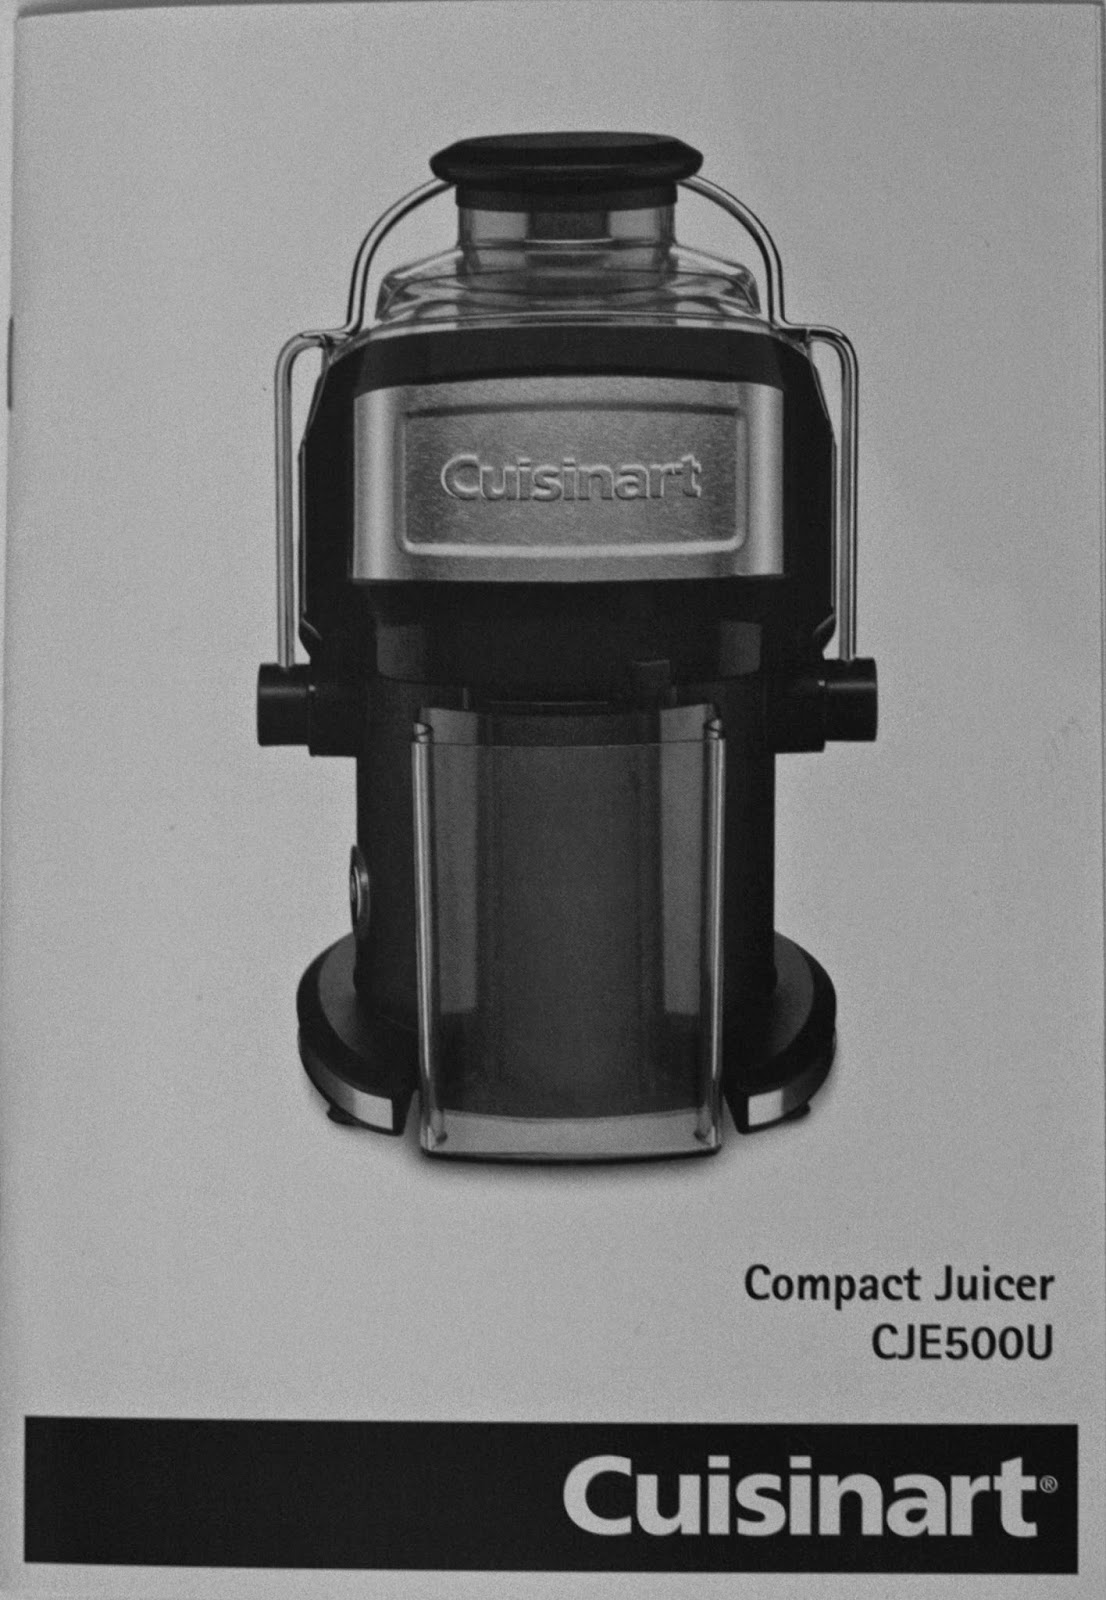 Cuisinart Compact Juicer Instructions